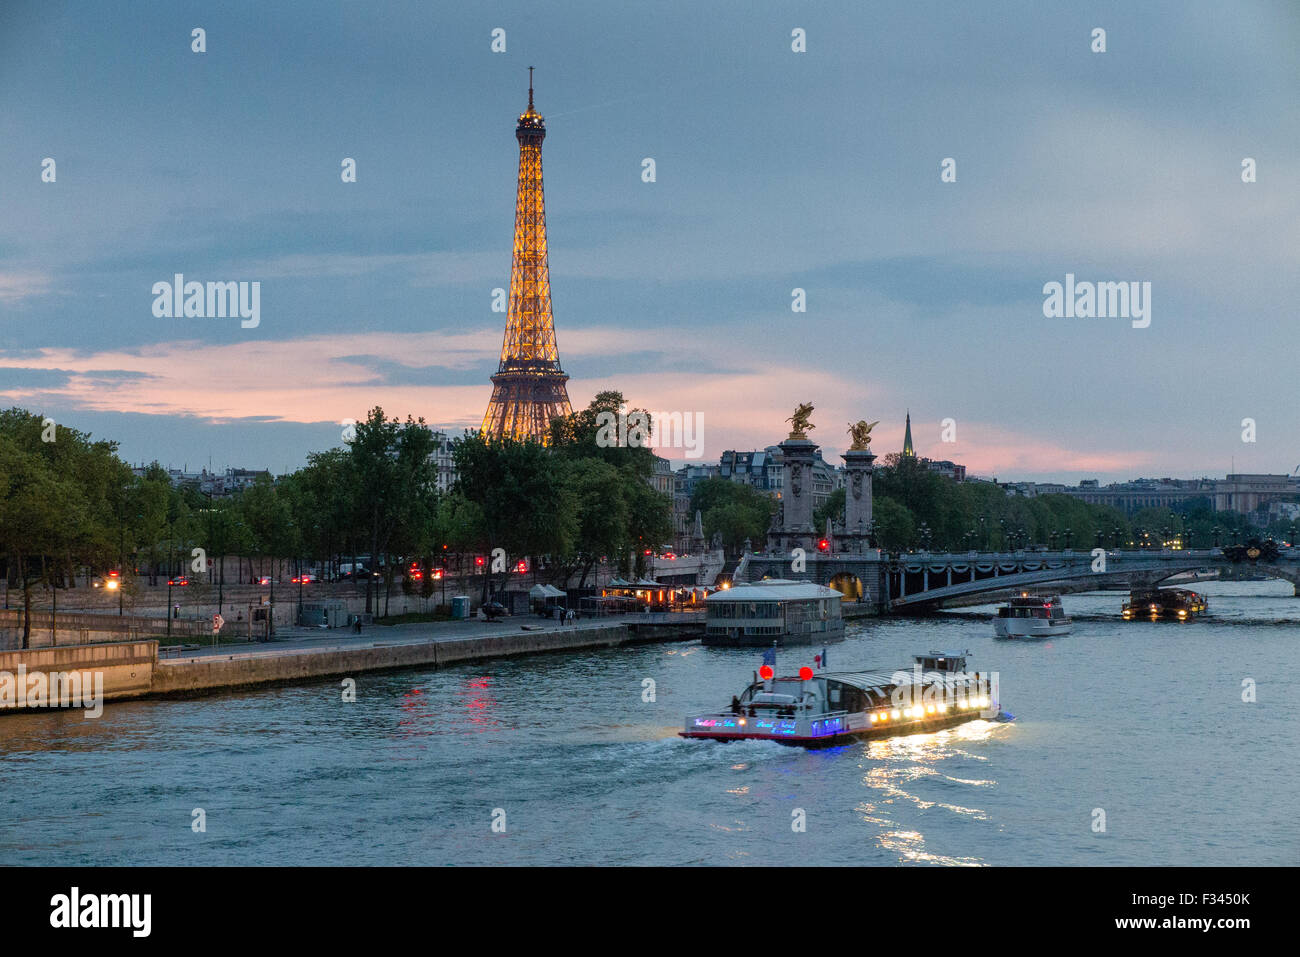 the Eiffel Tower & River Seine, Paris, France - Stock Image